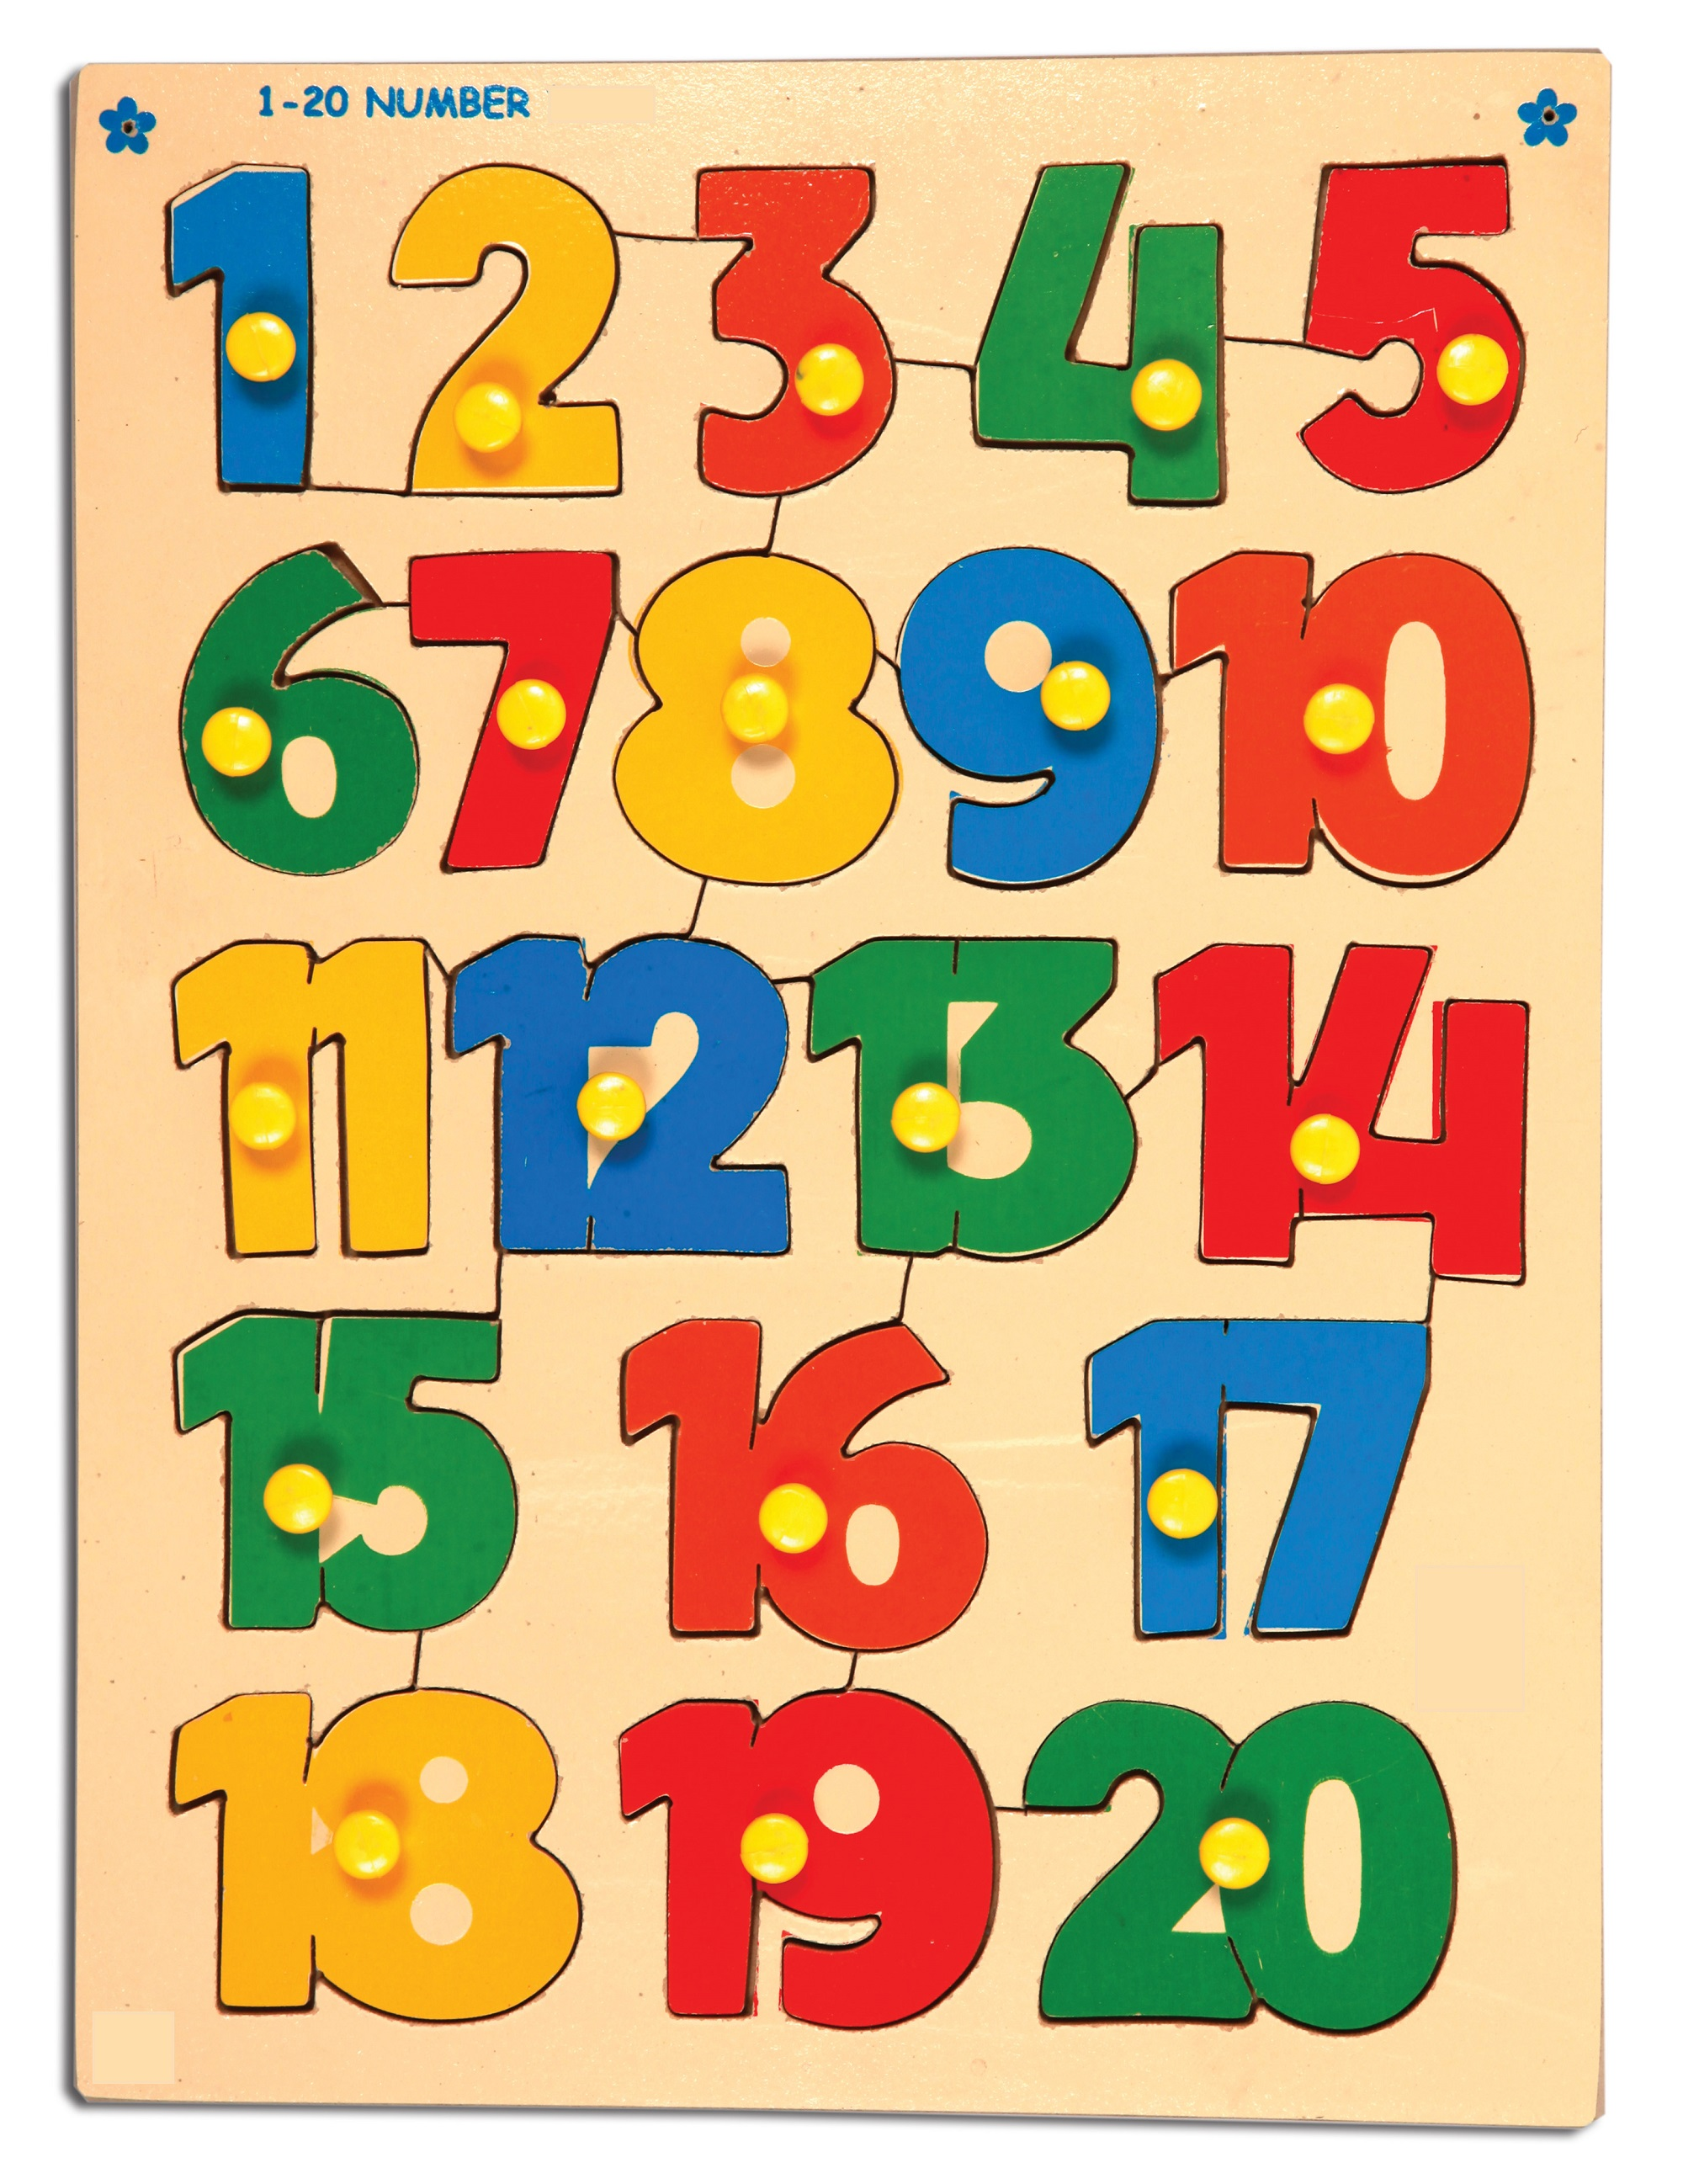 1-20 number chart for kids